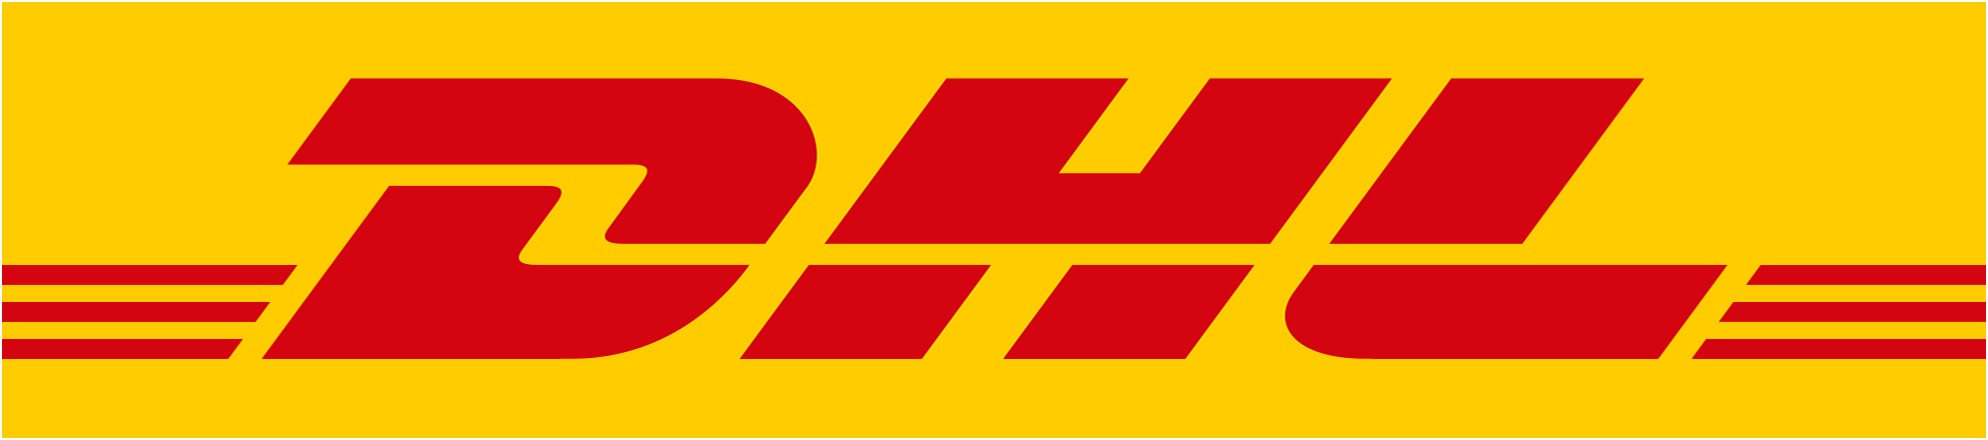 DHL and Huawei Accelerate Inbound-to-manufacturing Logistics with Internet of Things Solution